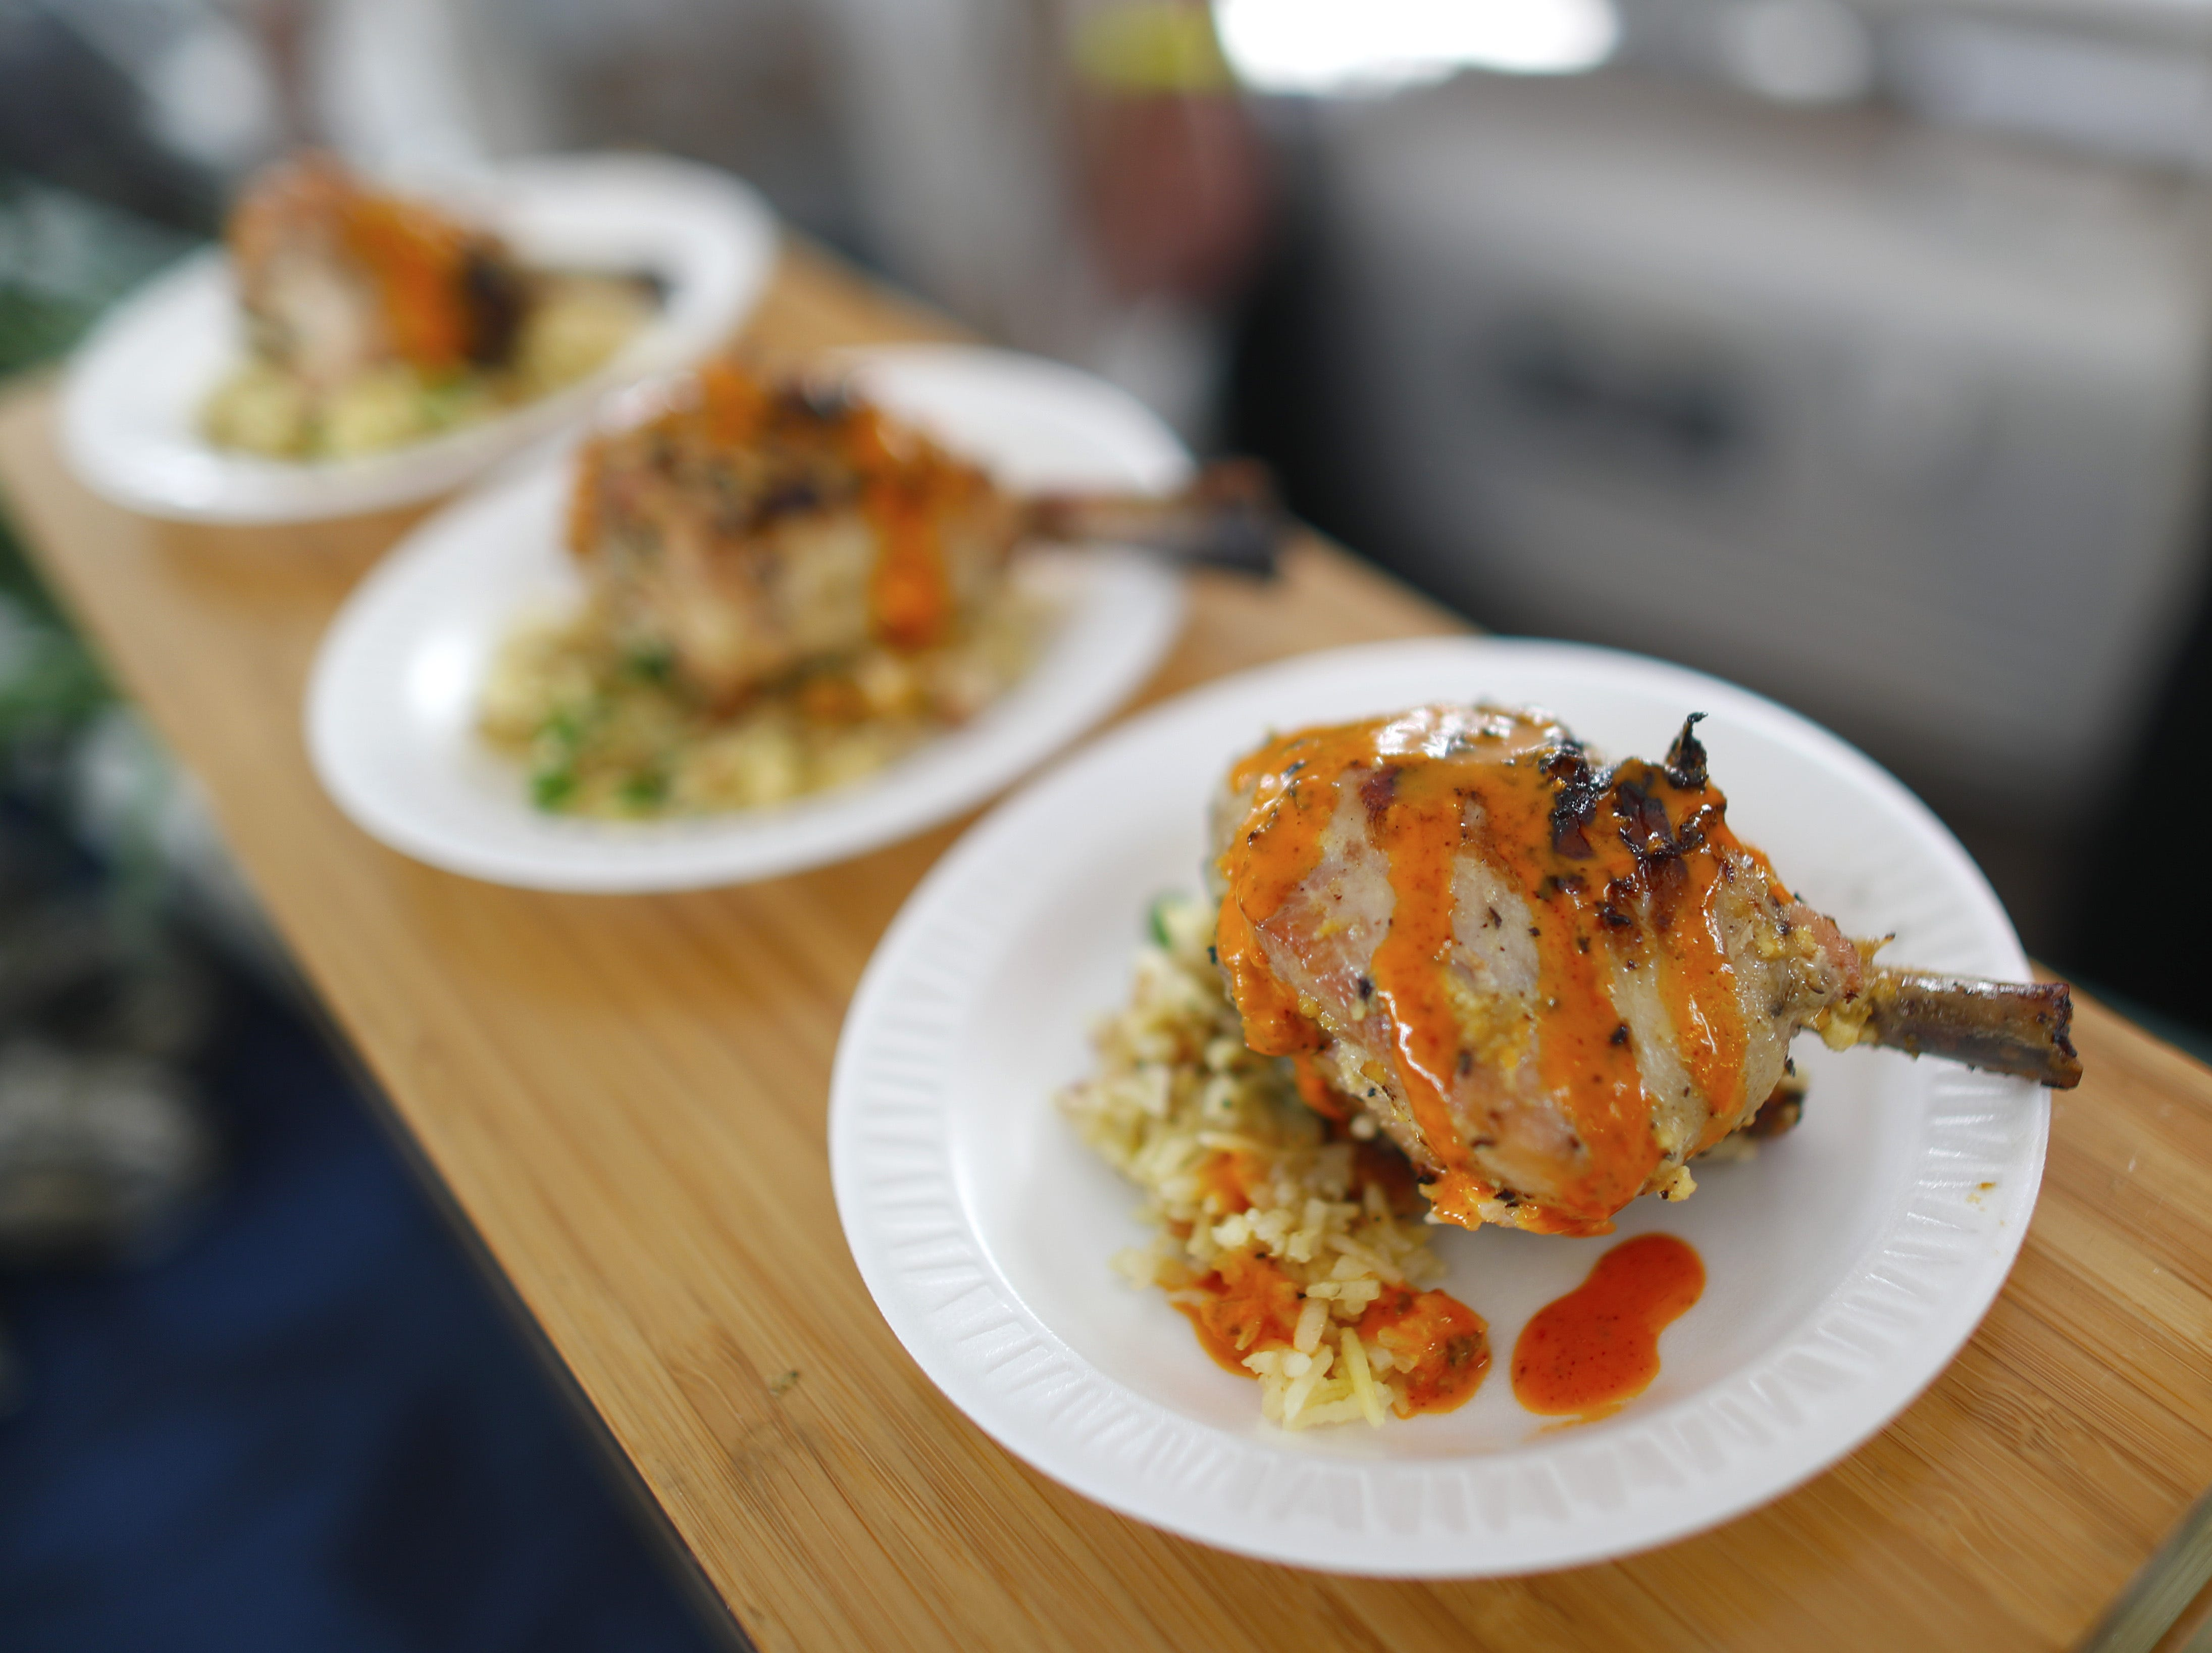 Mojo chicken with saffron plantain rice is displayed during the azcentral Wine & Food Experience at WestWorld of Scottsdale, Ariz. on Nov. 4, 2018.